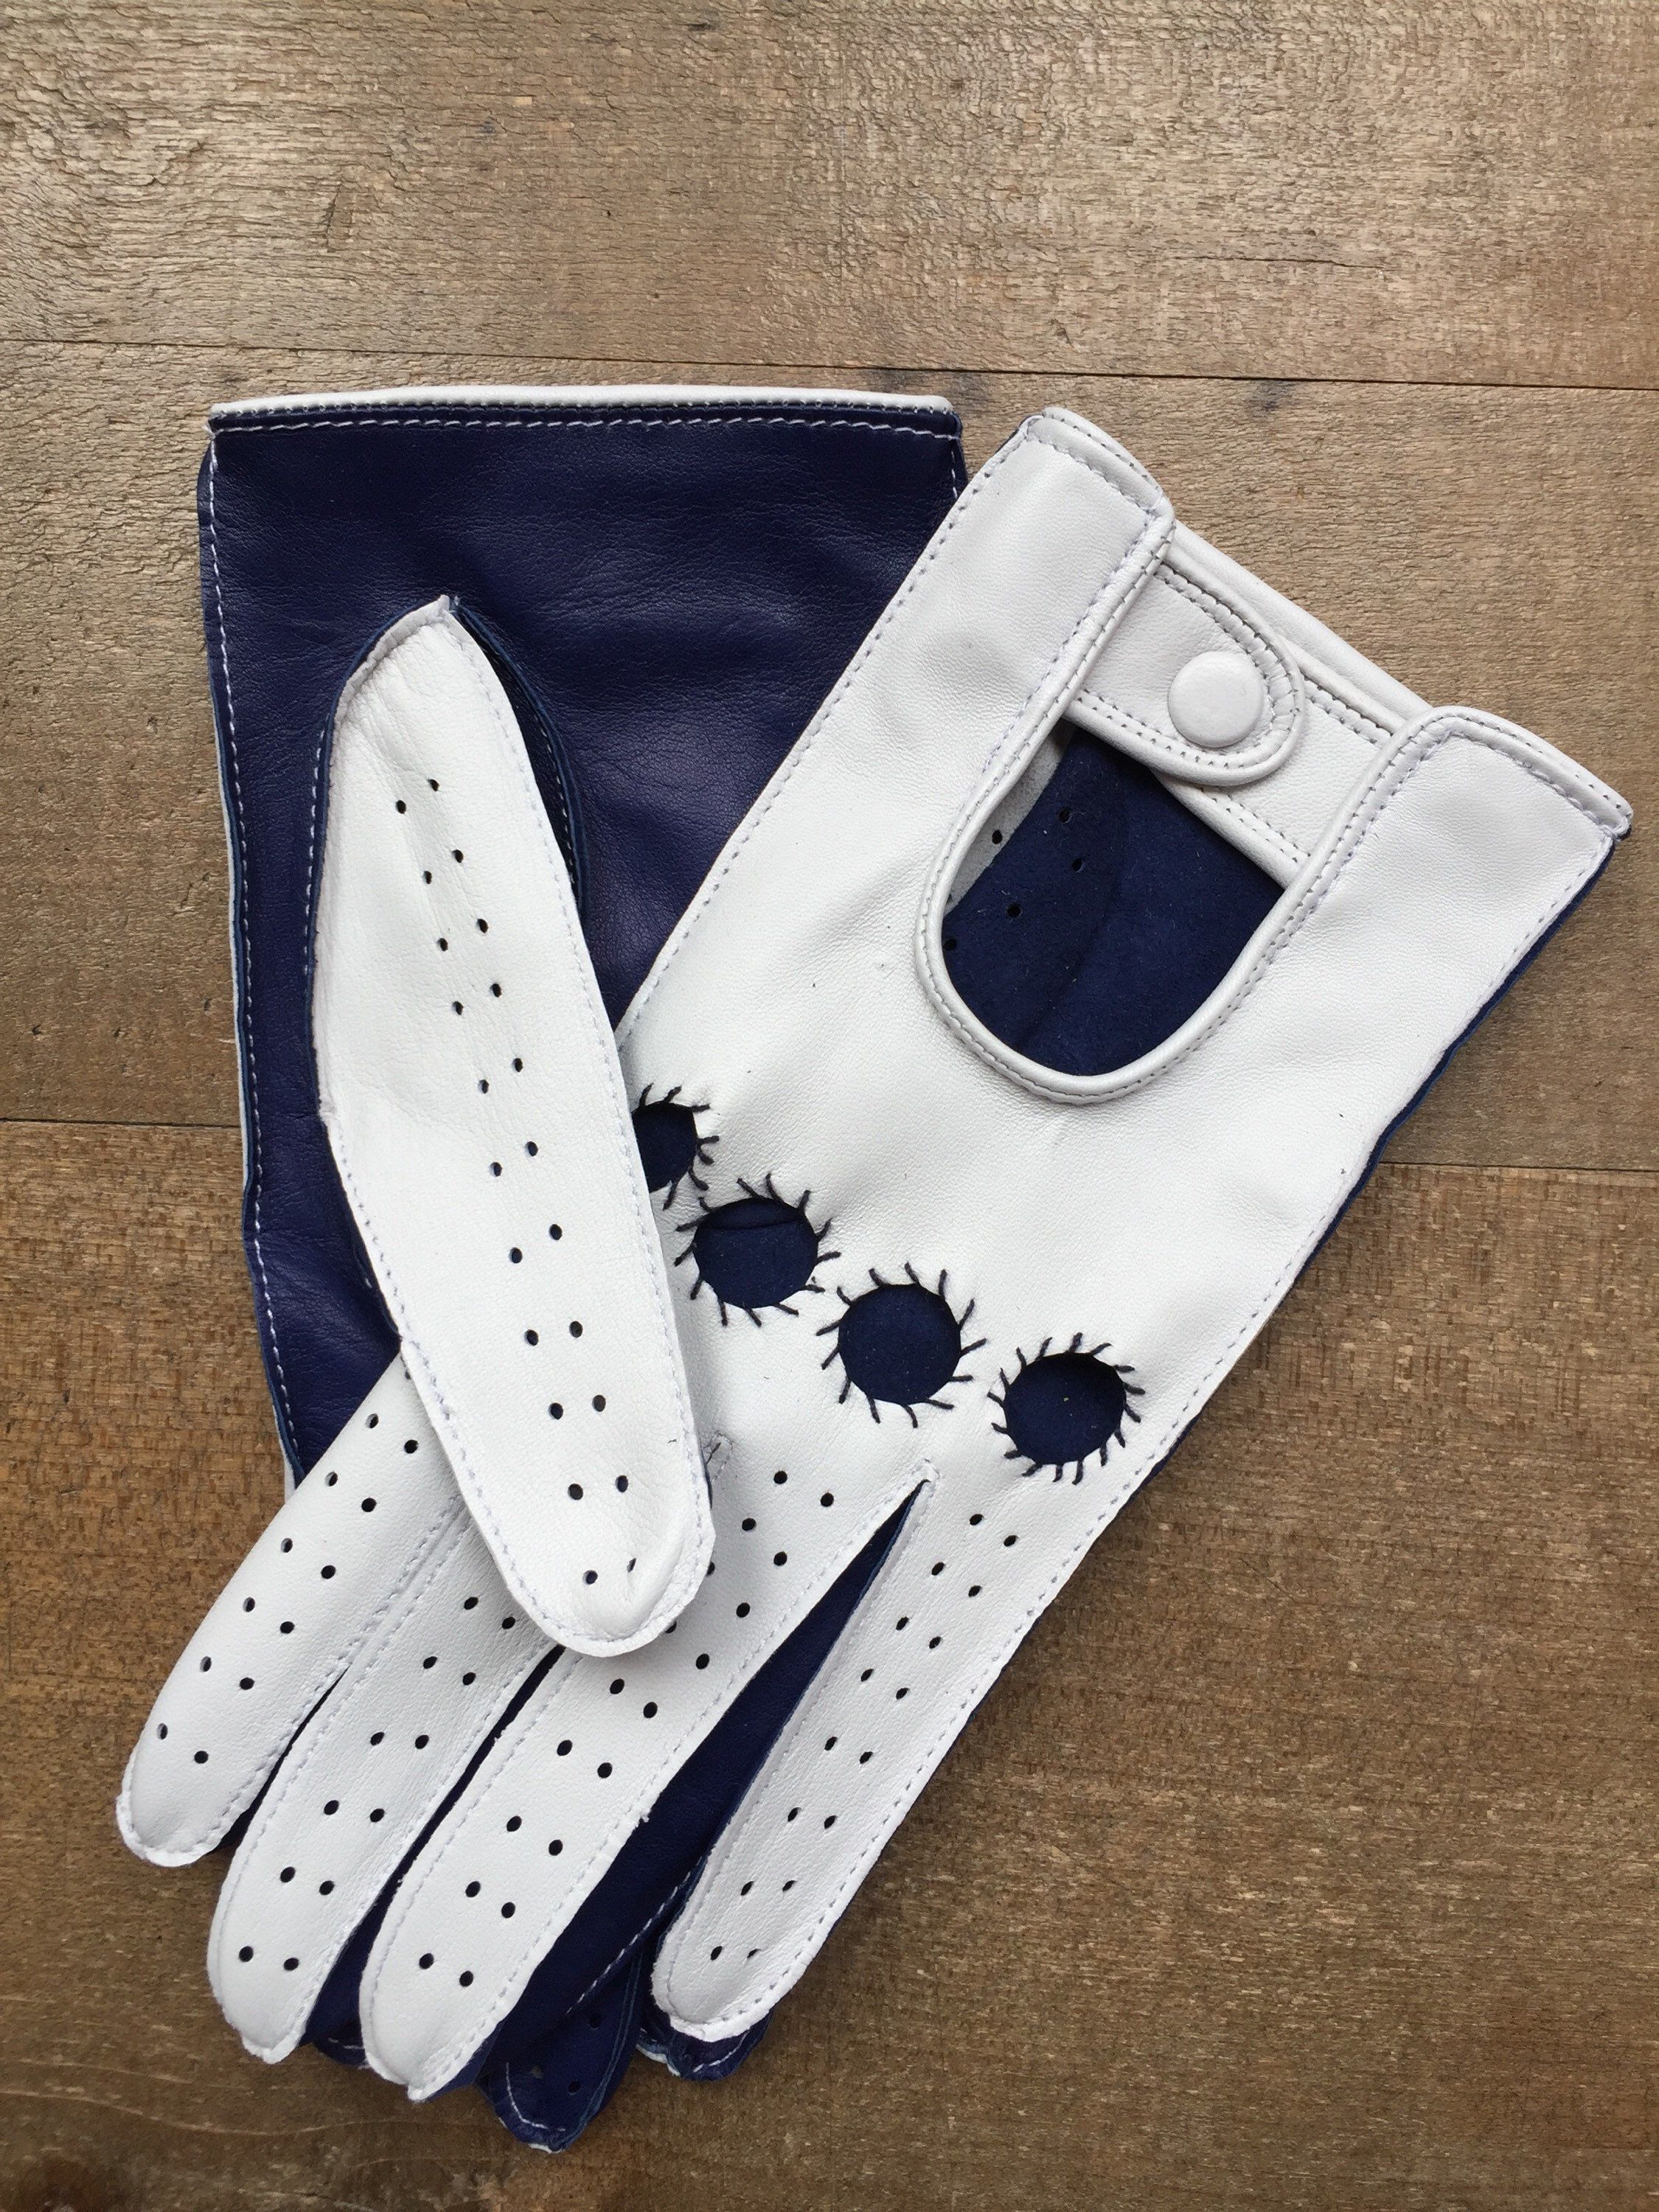 Leather driving gloves for ladies navy and white gift for her